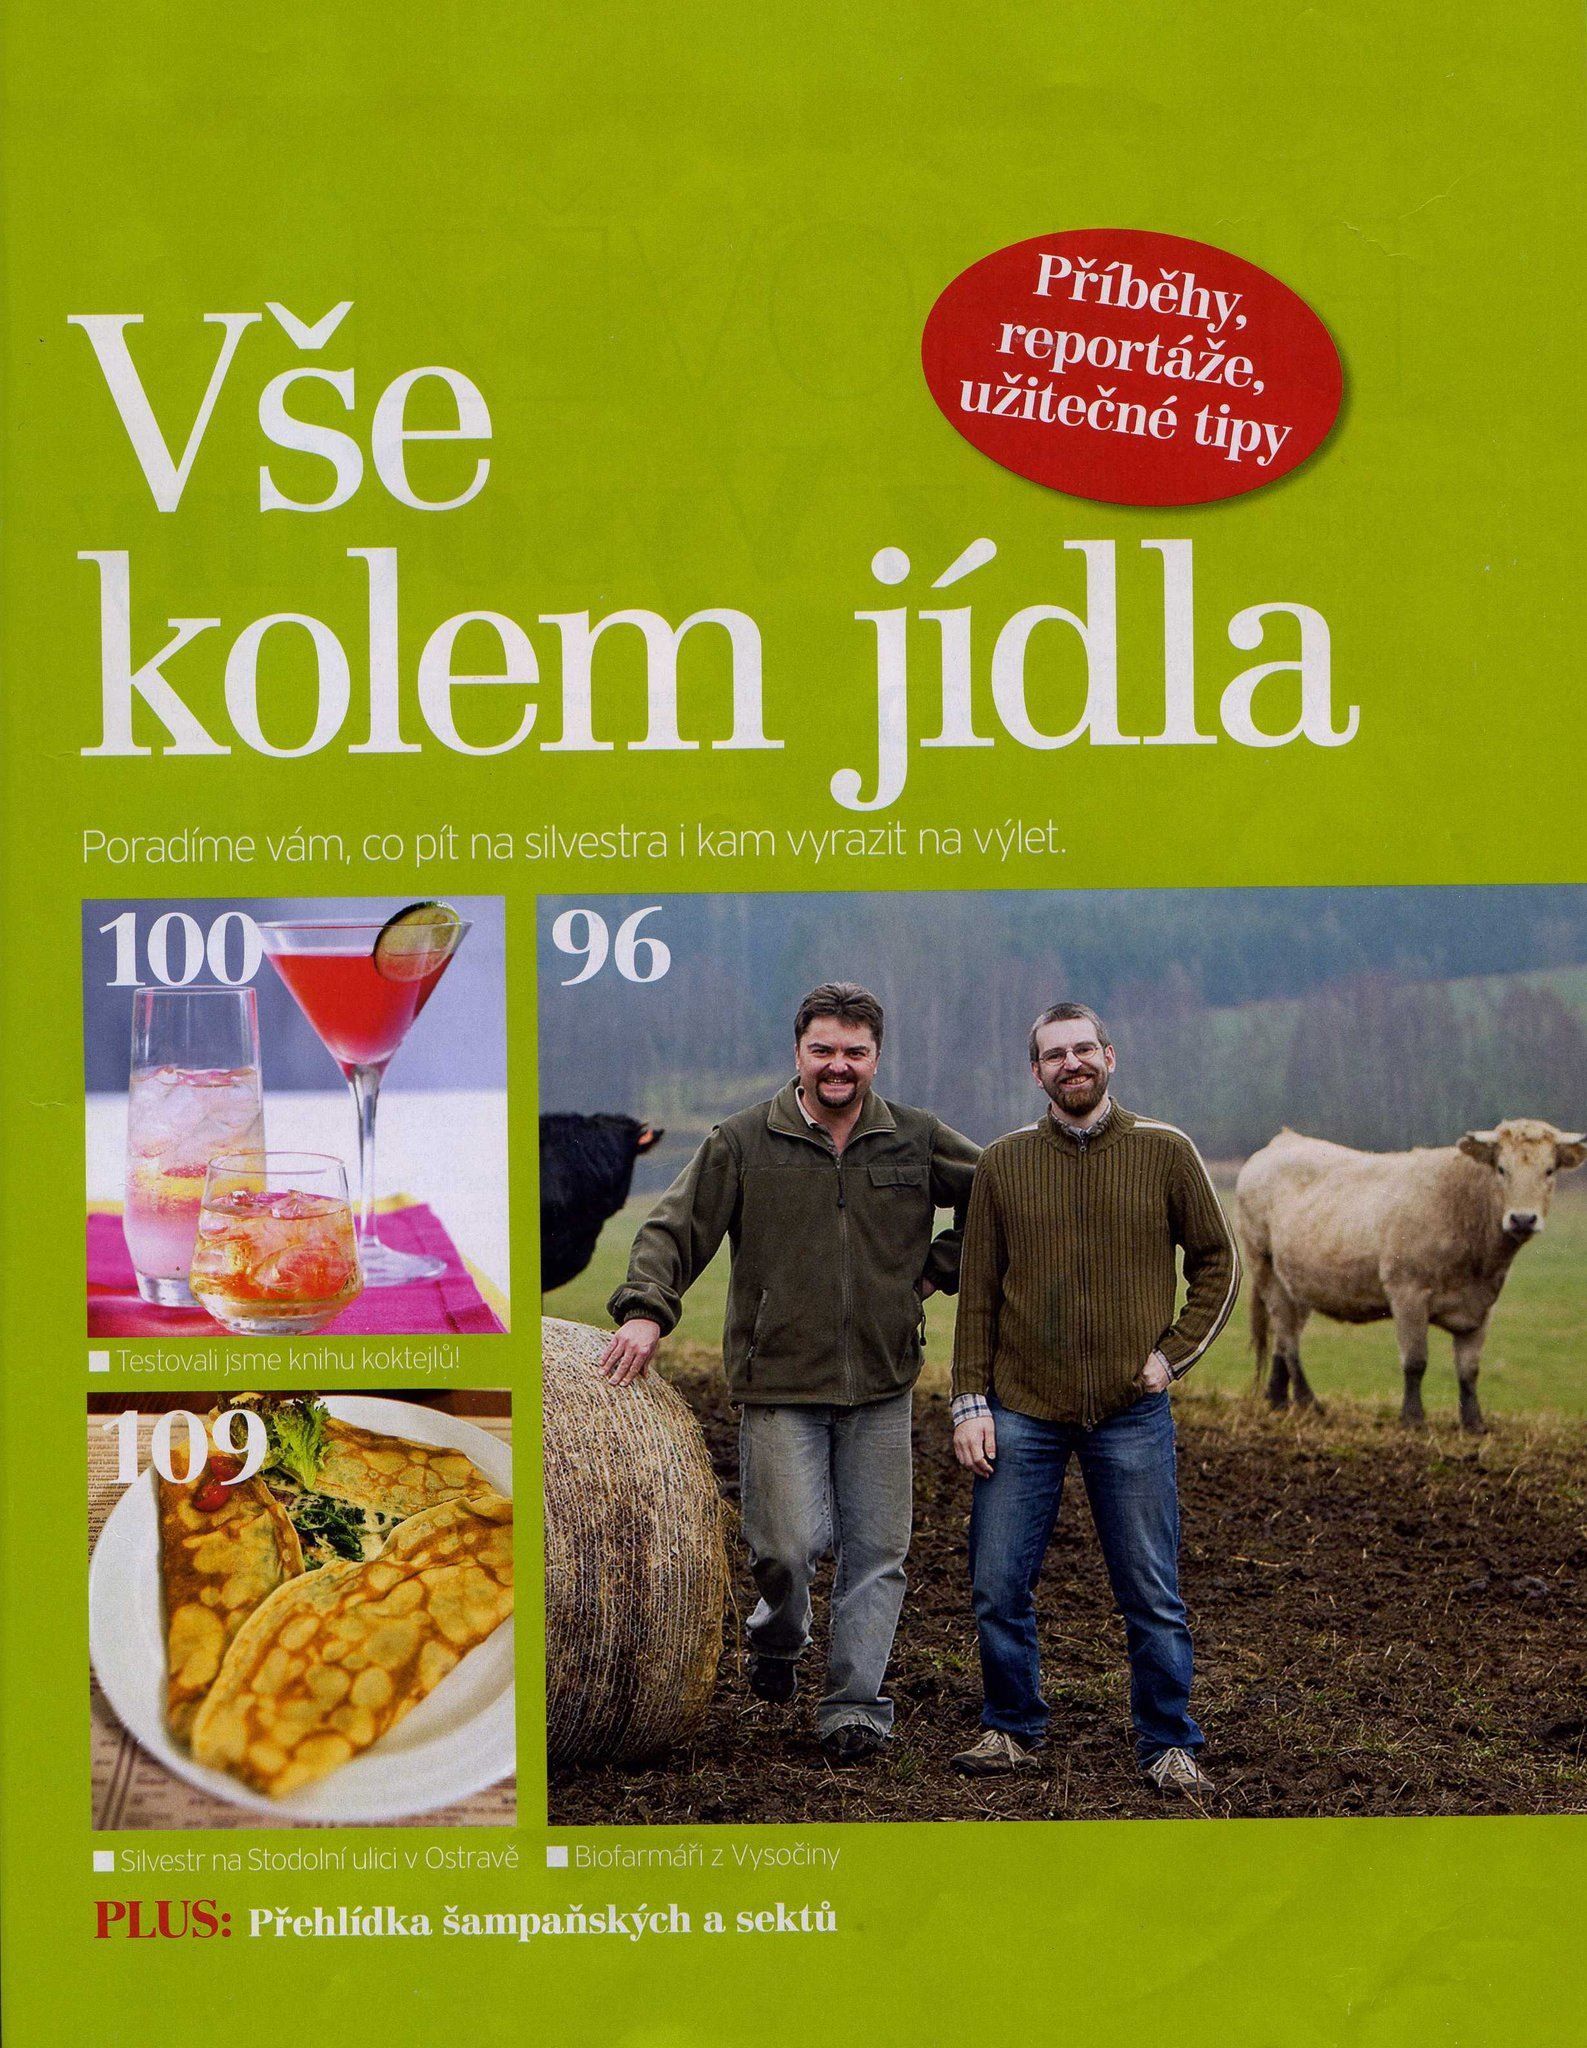 Reportage about our company in a Czech magazine